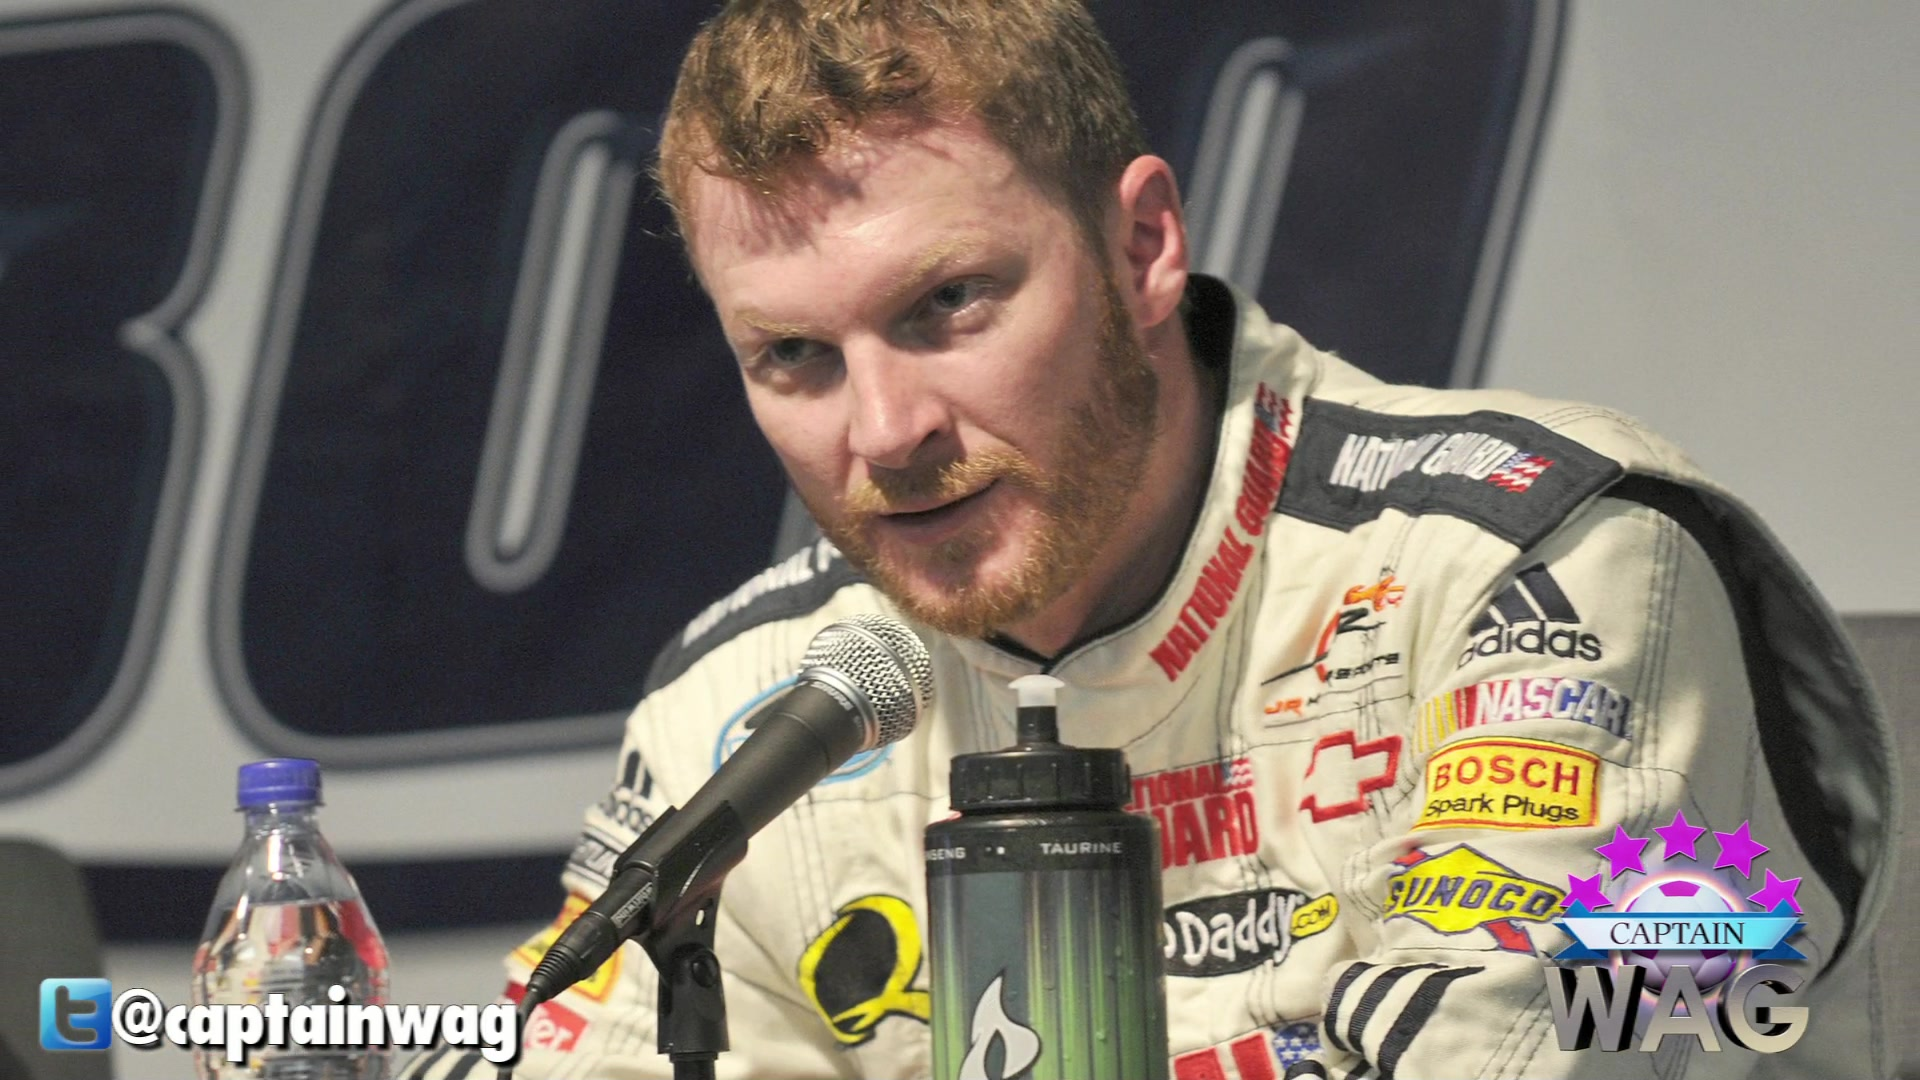 Dale Earnhardt Jr. Out 2 Races After Suffering A Concussion